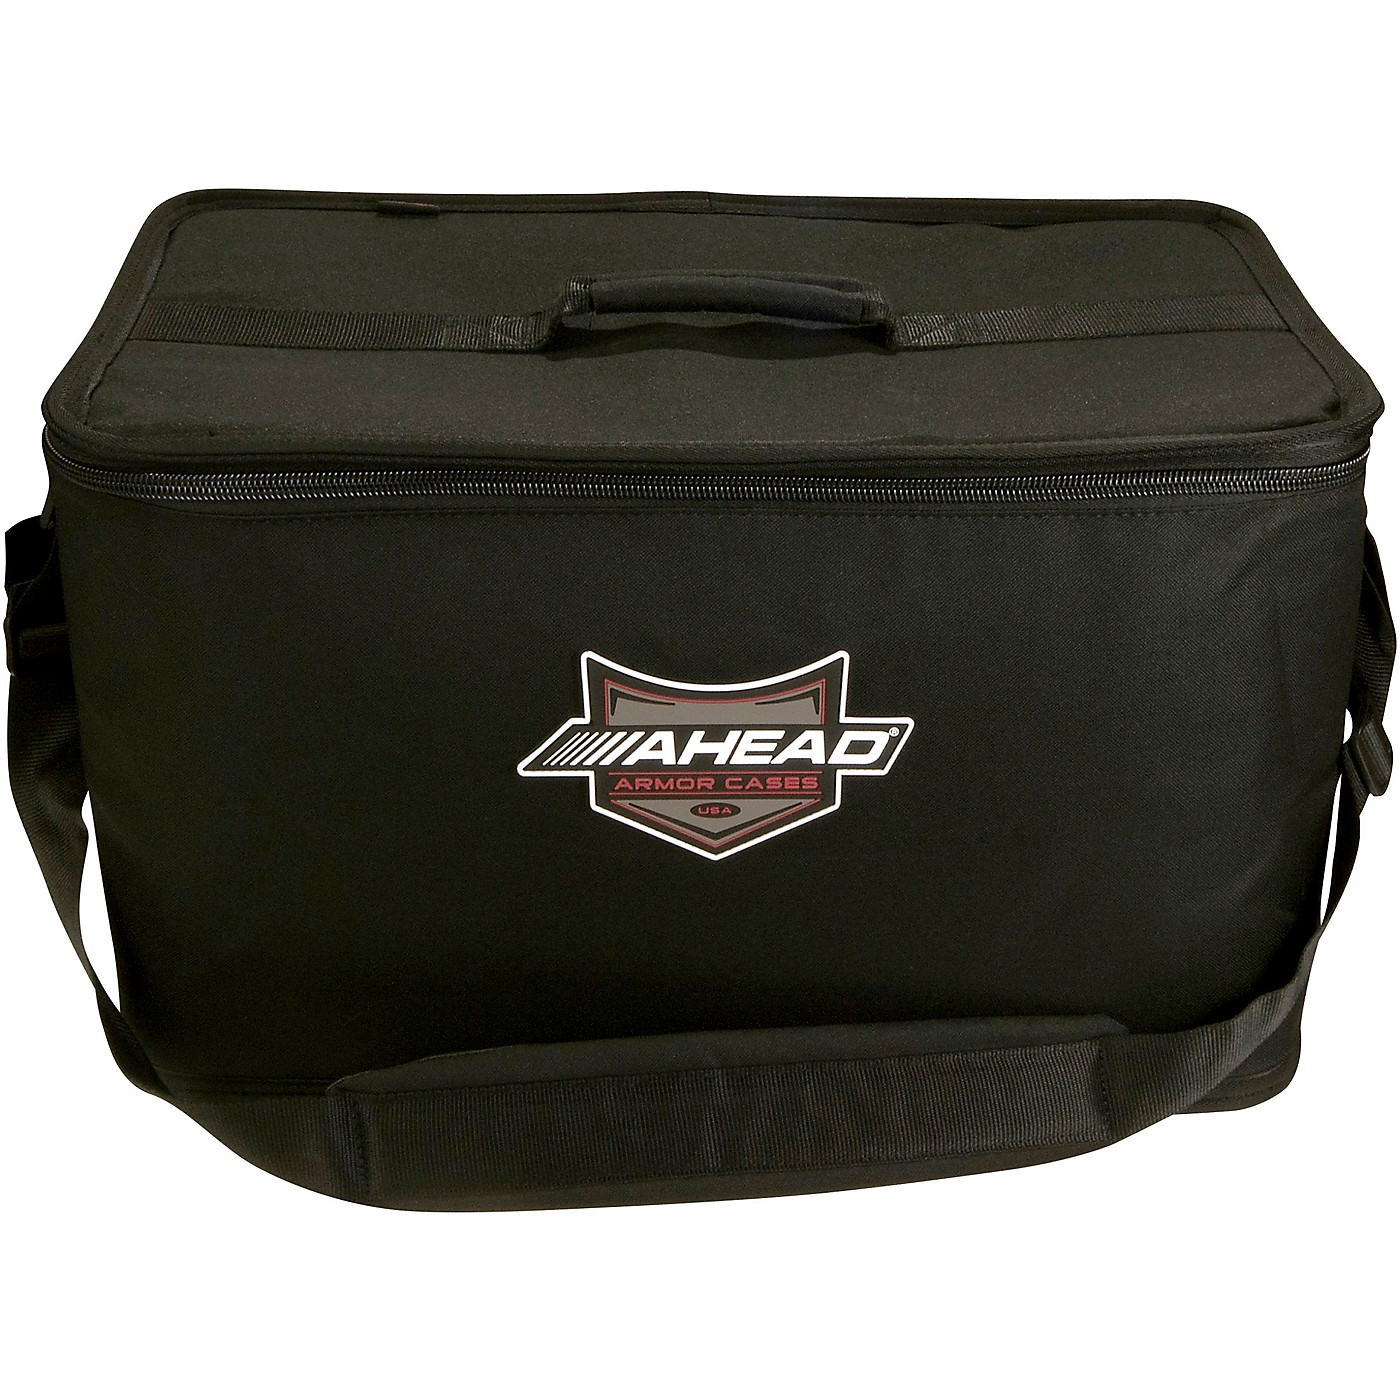 Ahead Armor Cases Cajon Deluxe with Shoulder Strap and Handle thumbnail